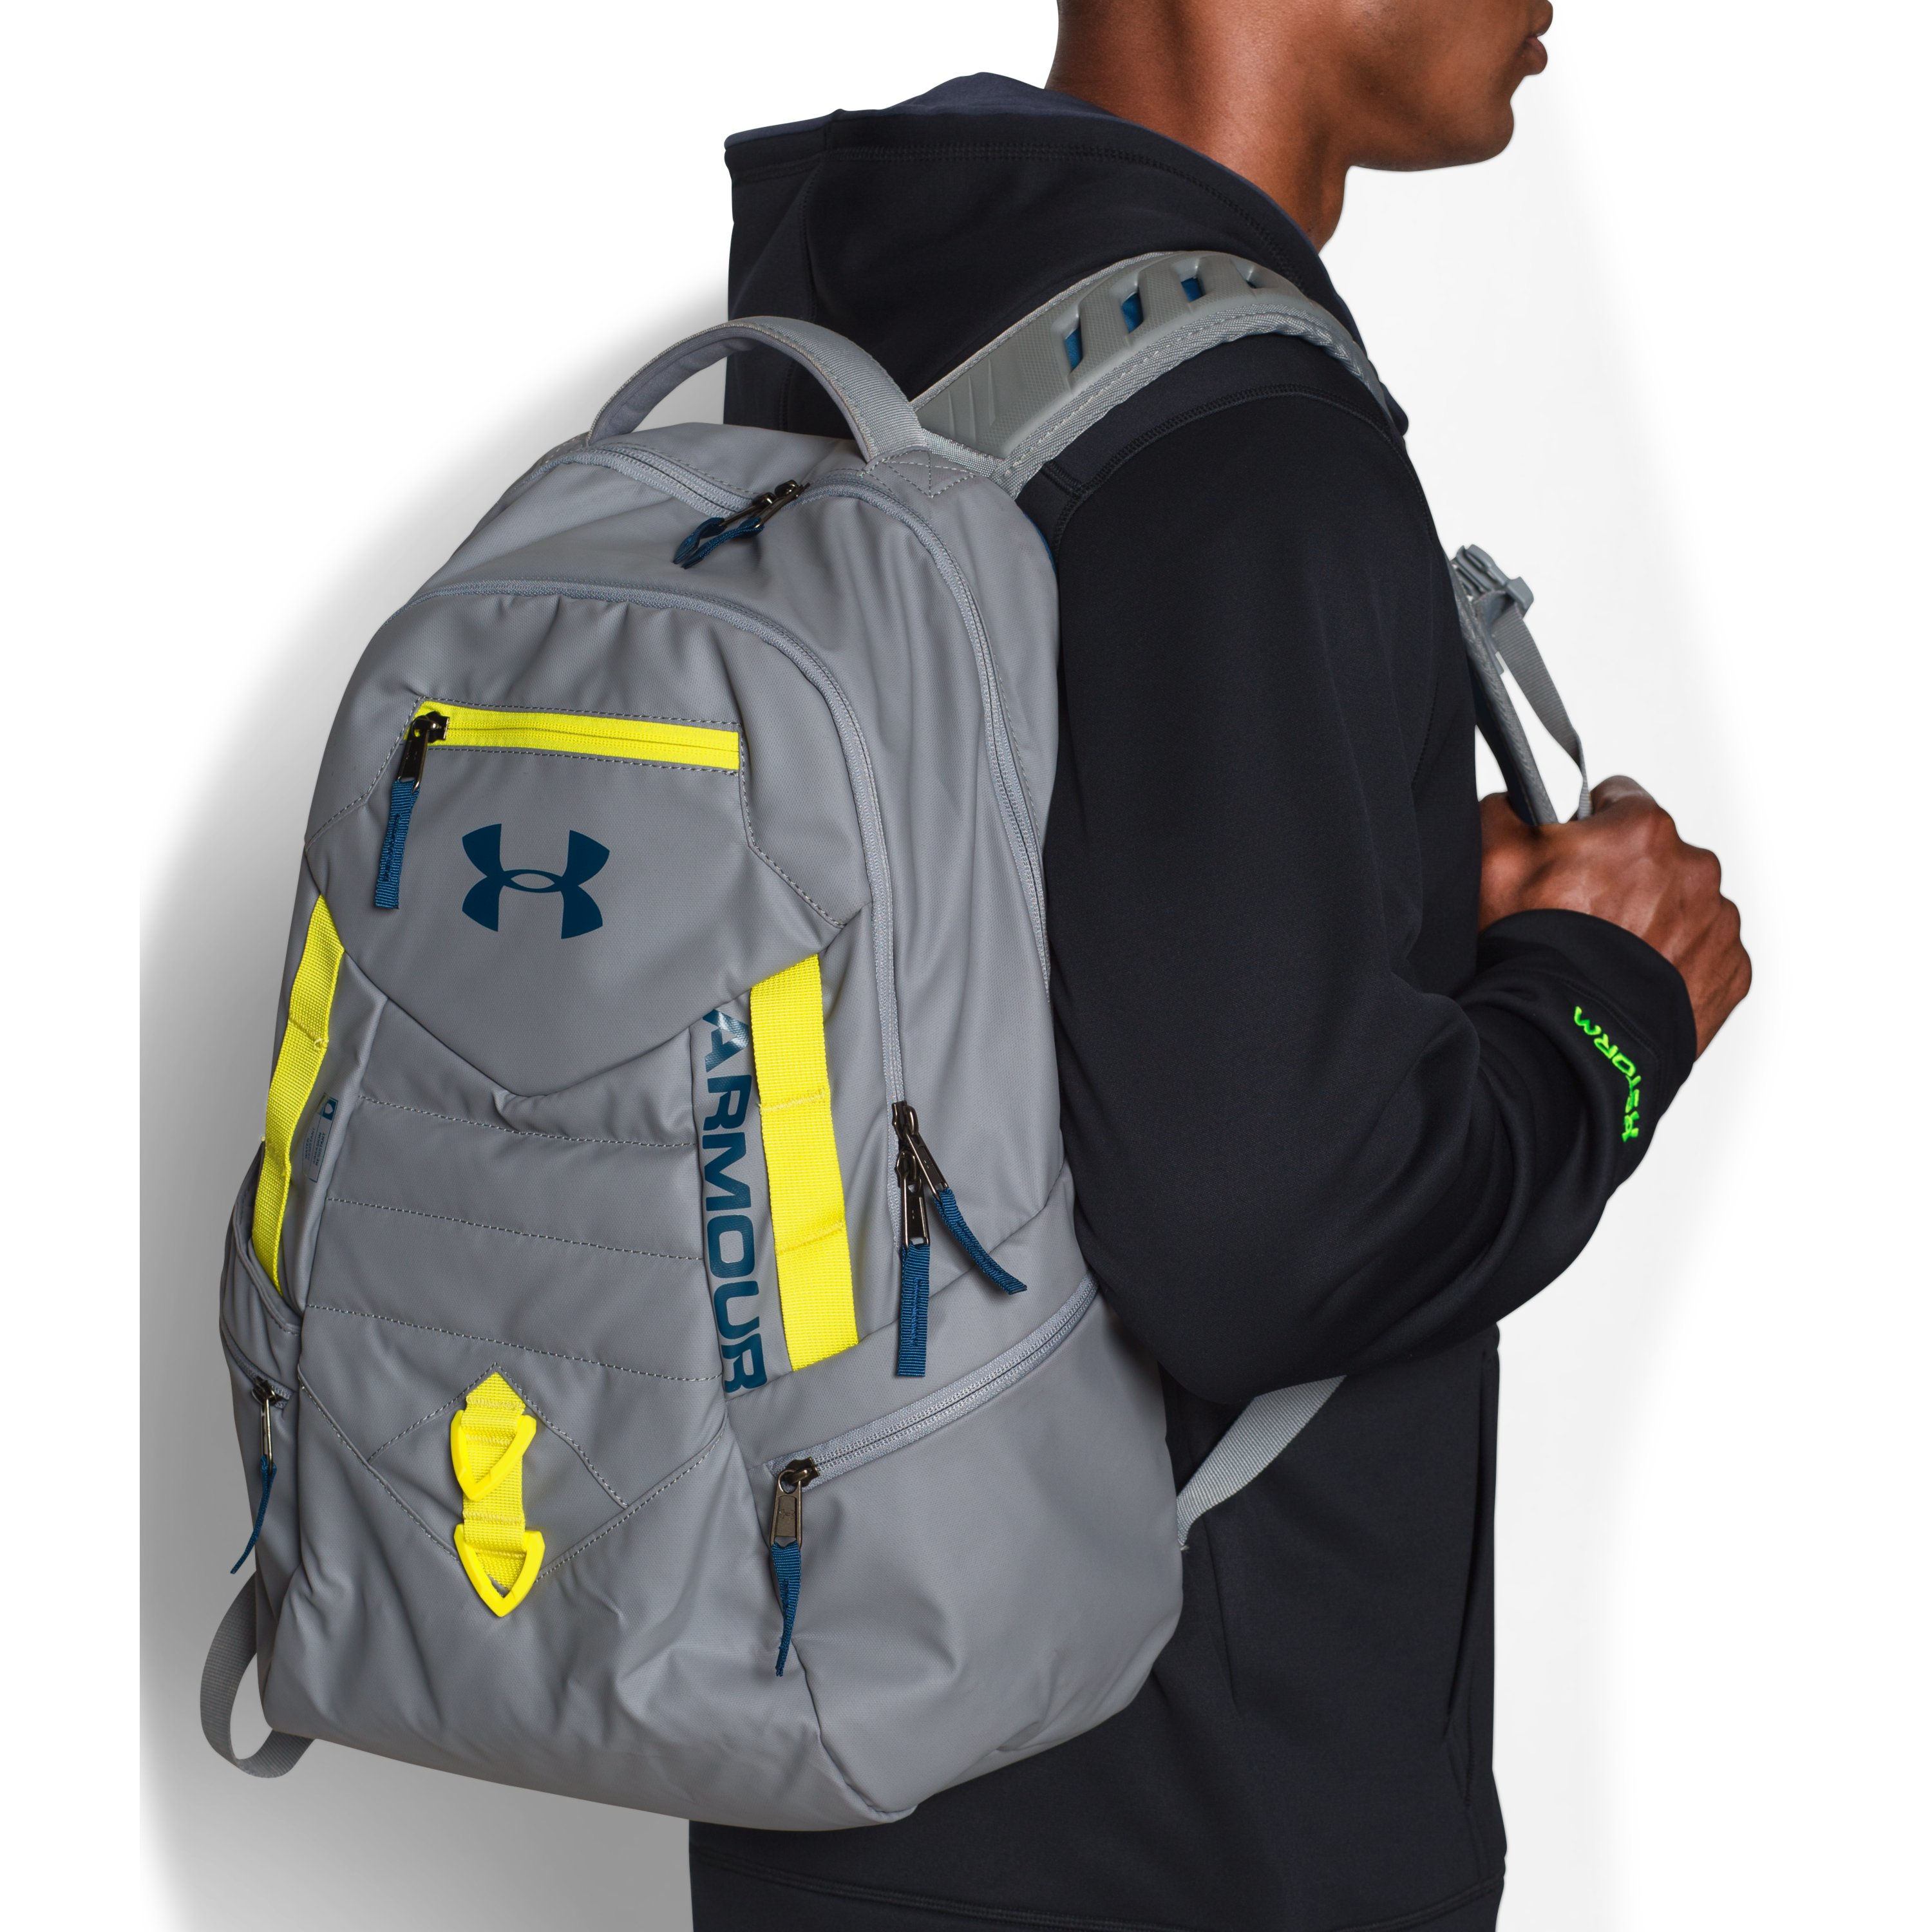 Lyst - Under Armour Ua Storm Quantum Backpack in Blue for Men cf6f6f04dee80